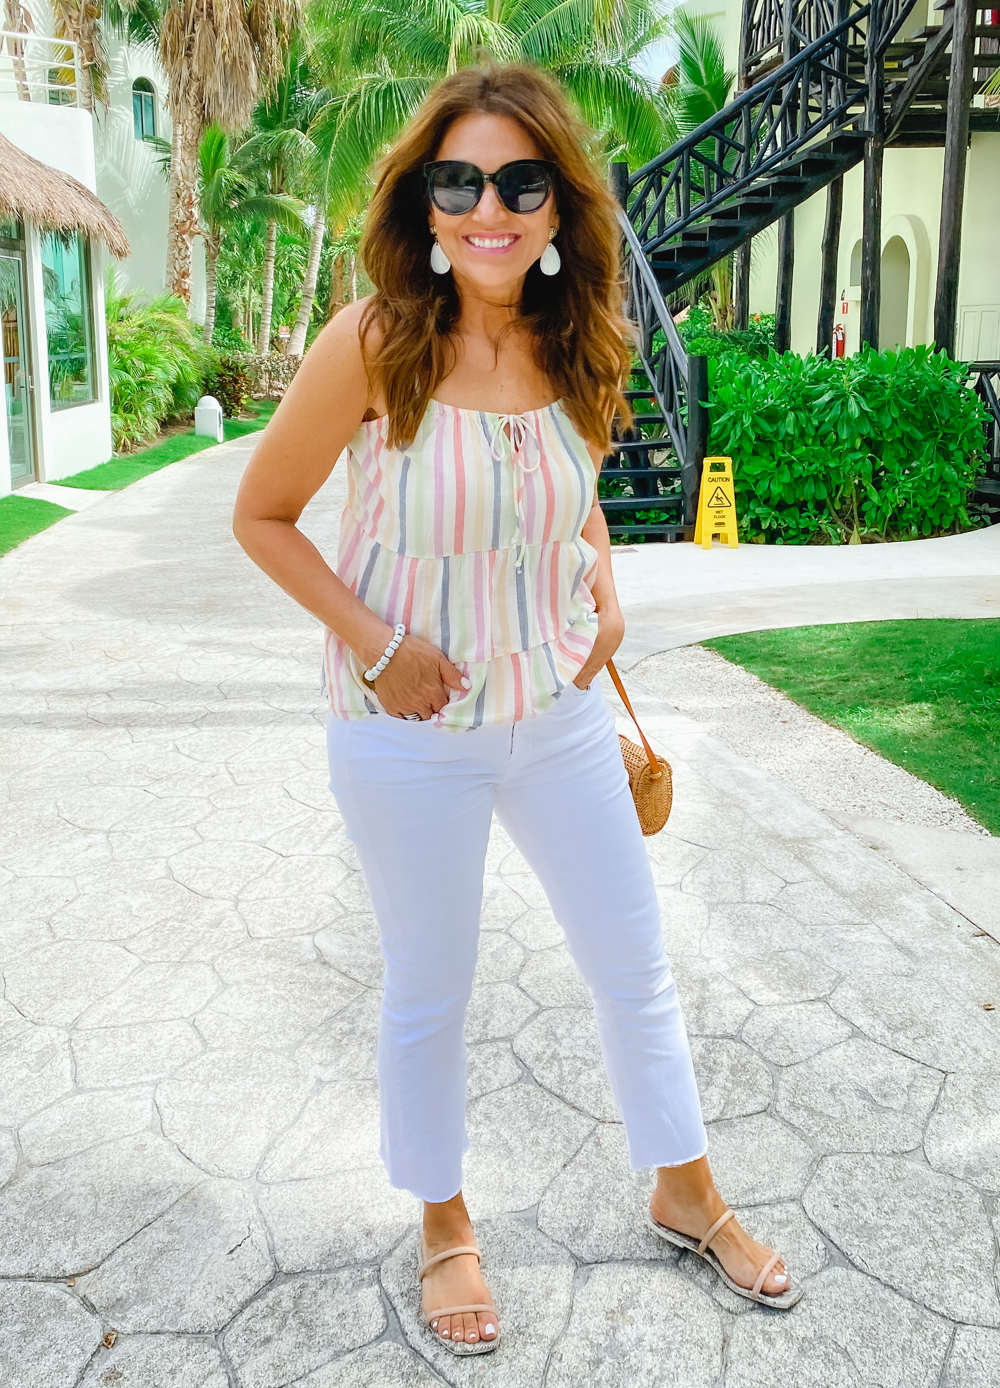 Summer Style Series: How to Style Sandals with White Jeans